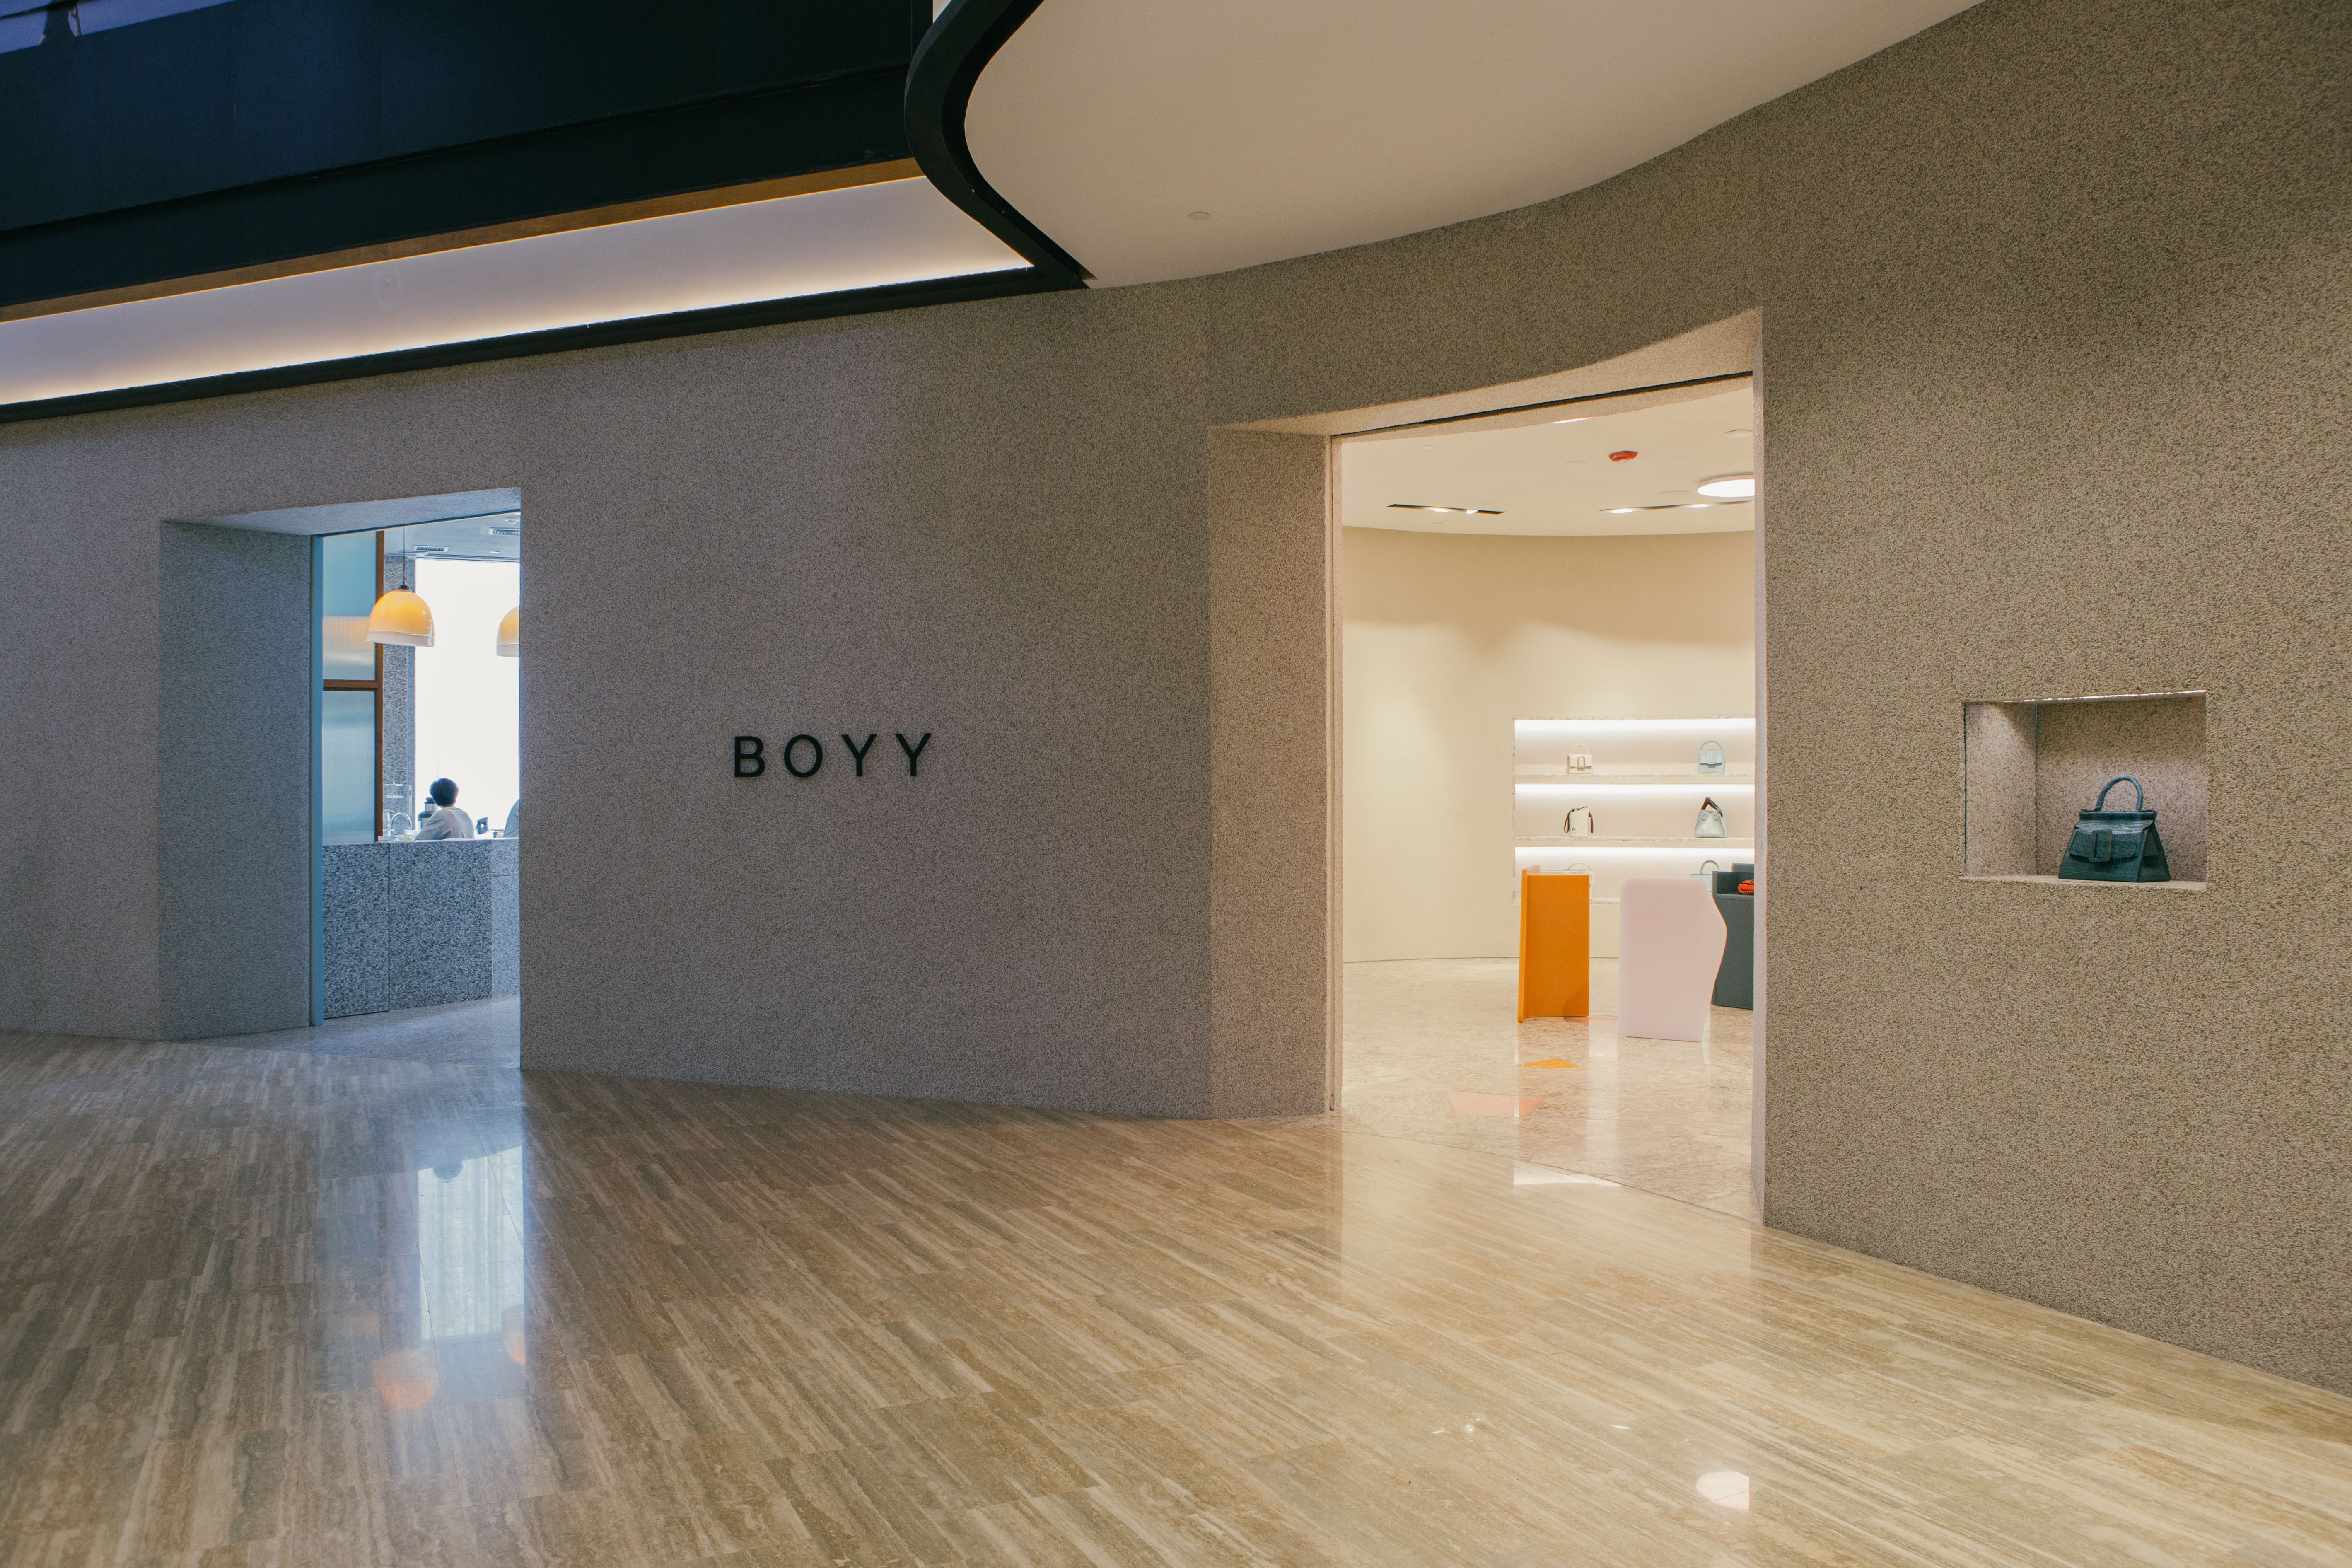 Take a look inside the new BOYY Boutique at Gaysorn Village